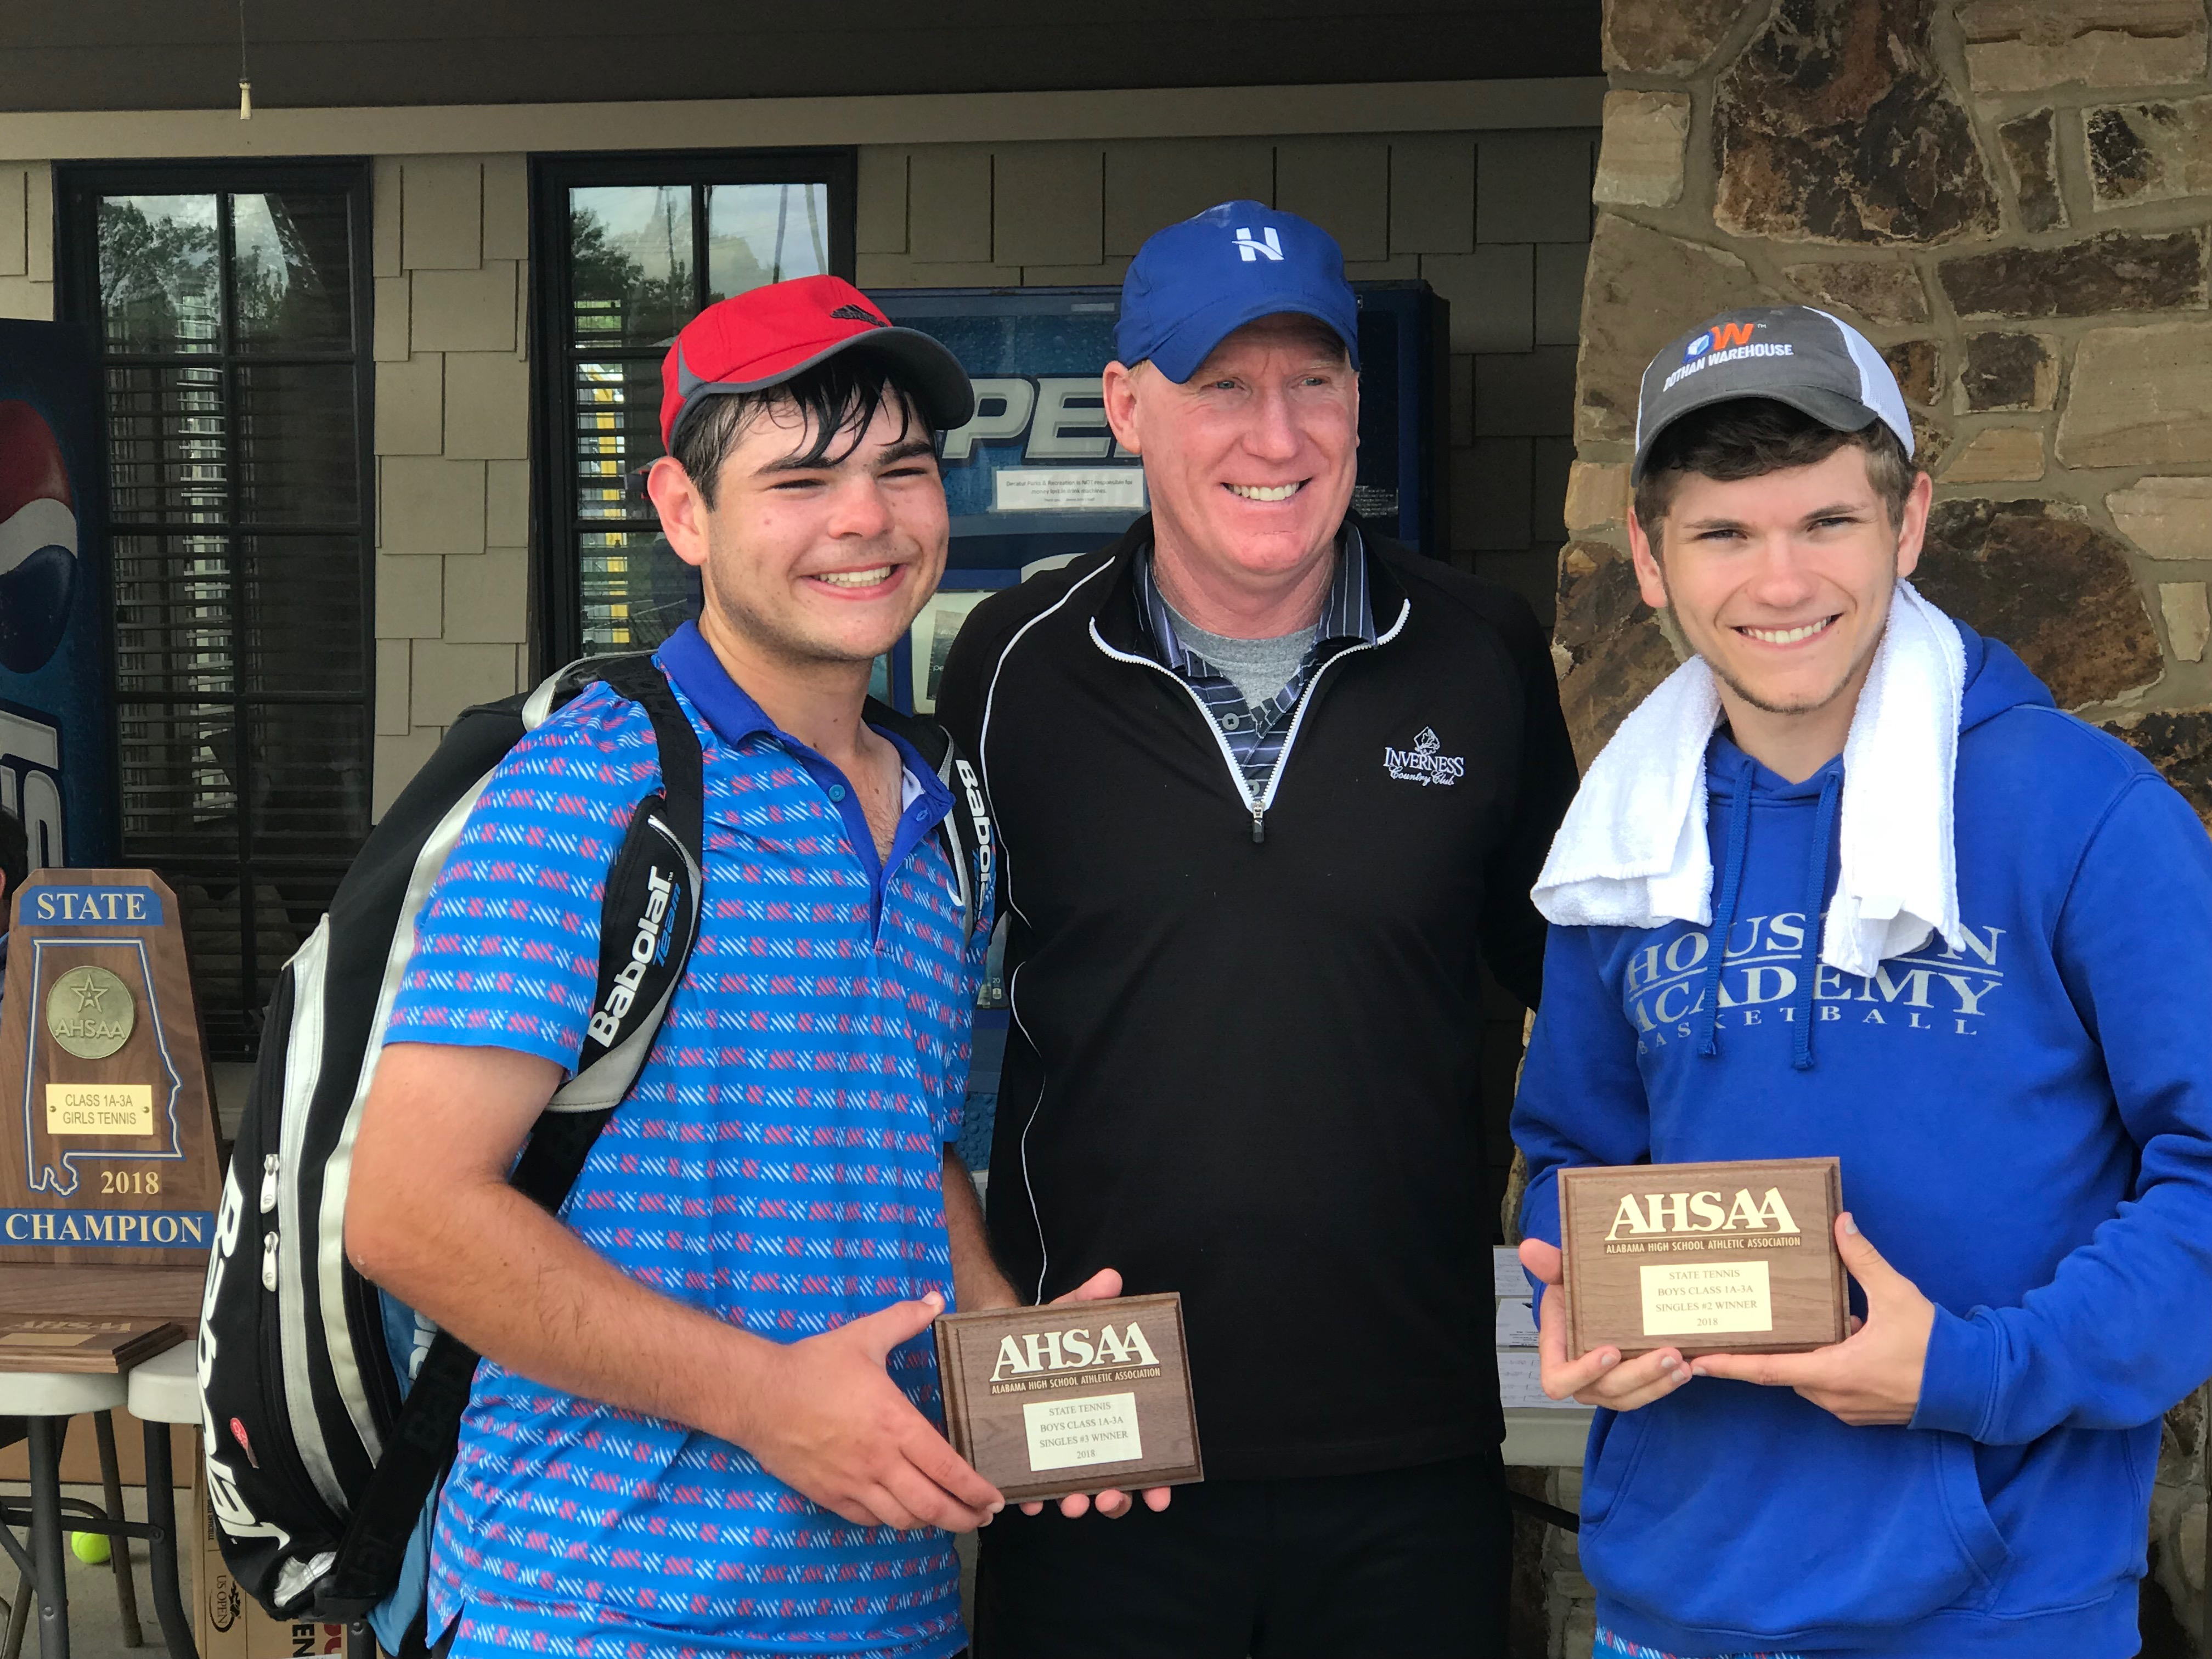 Houston Academy Raiders claim state tennis singles titles, Class 1A-3A at the #2, #3 and #4 spots